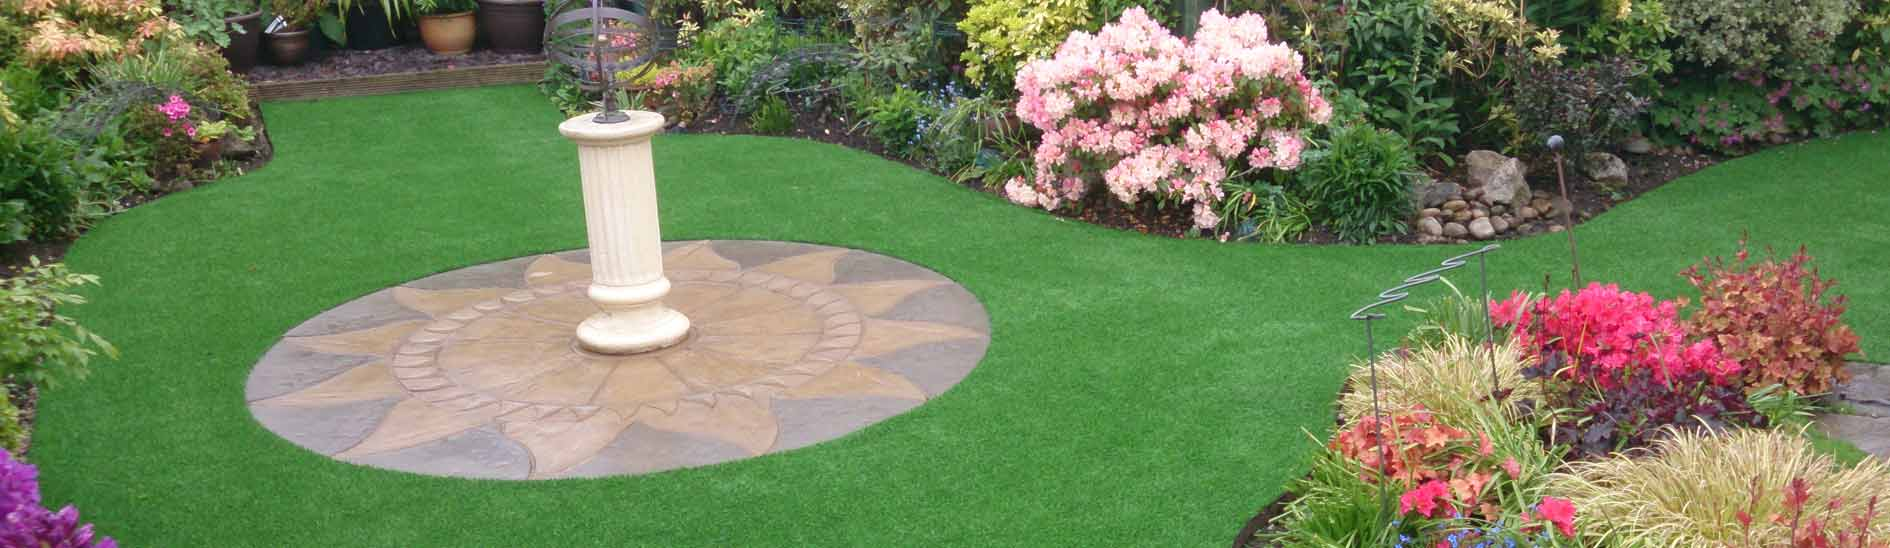 Artificial grass Landscaping in Dorset, Poole Hampshire and Bournemouth